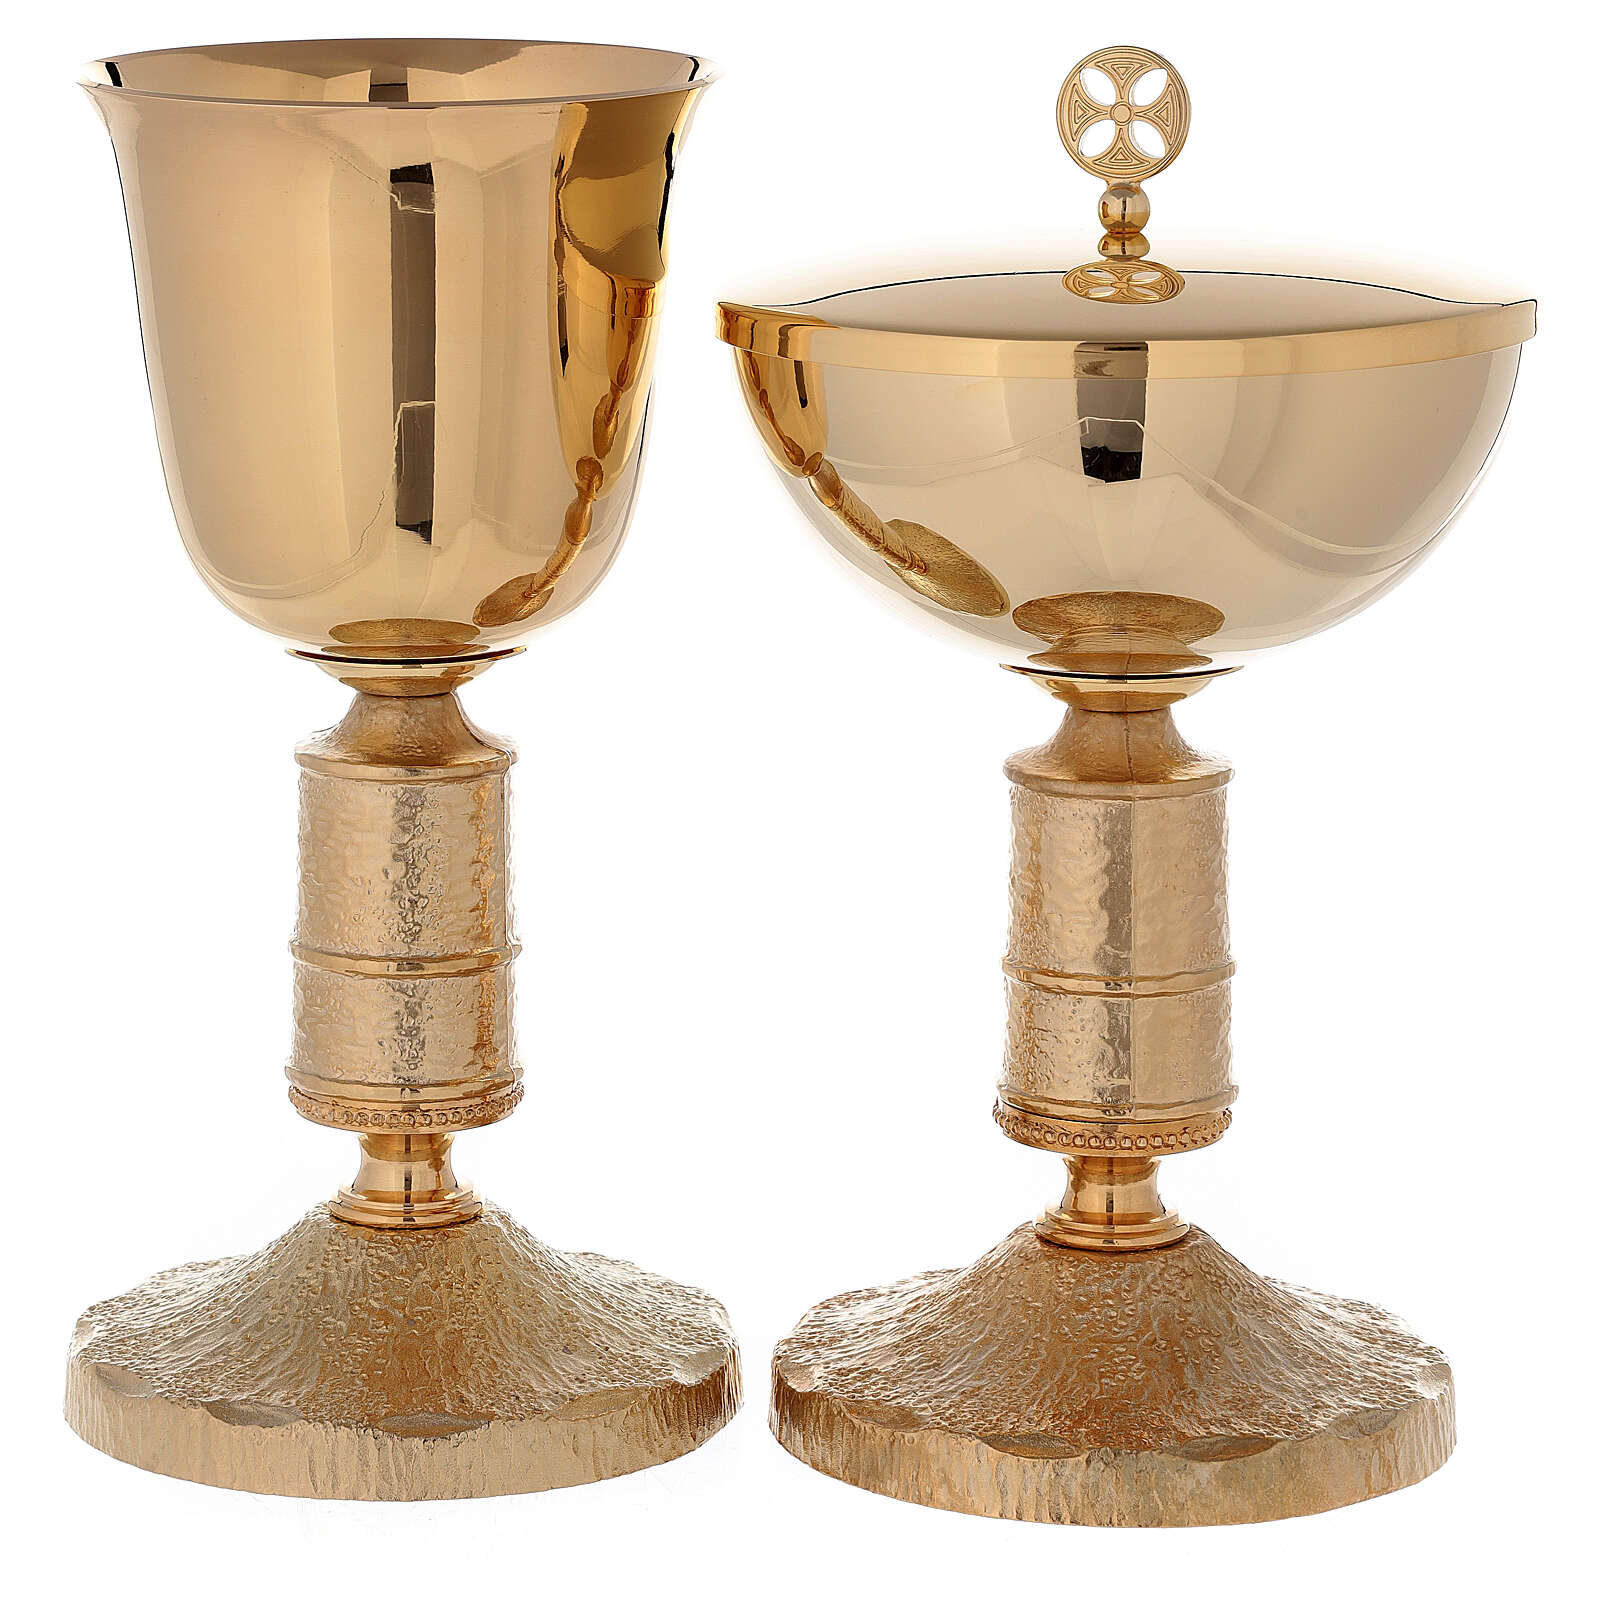 Chalice and Ciborium in 24-karat gold plated brass with Medievalis node 4